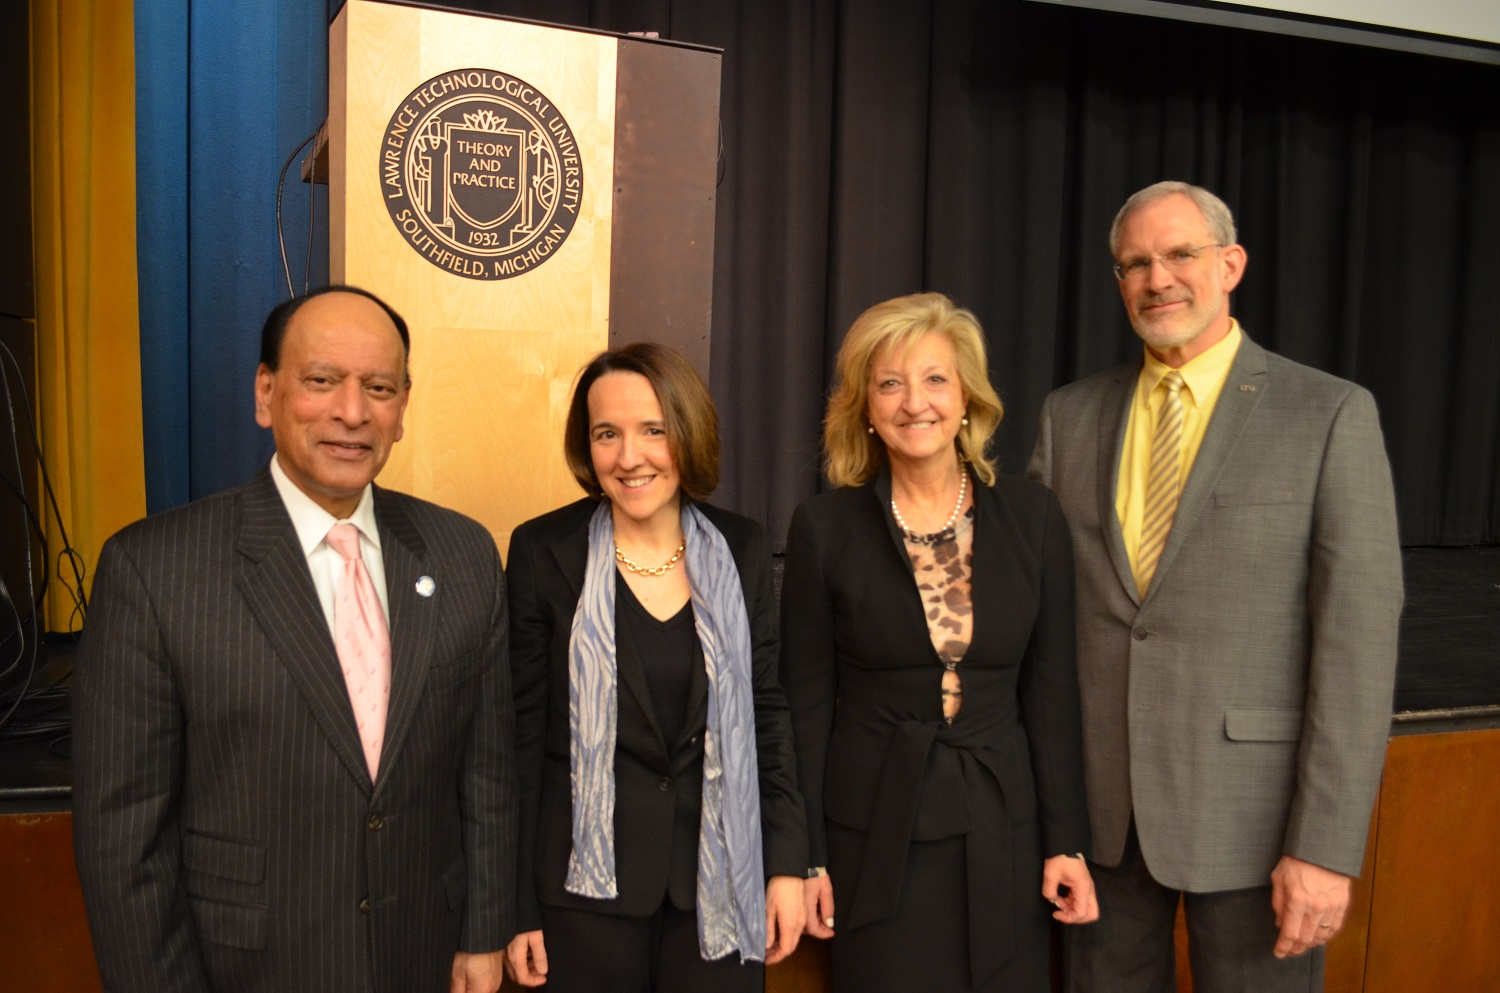 LTU President Virinder Moudgil, University of Michigan Professor Sara Pozzi, LTU Provost Maria Vaz, and Glen Bauer, interim dean of the LTU College of Arts and Sciences